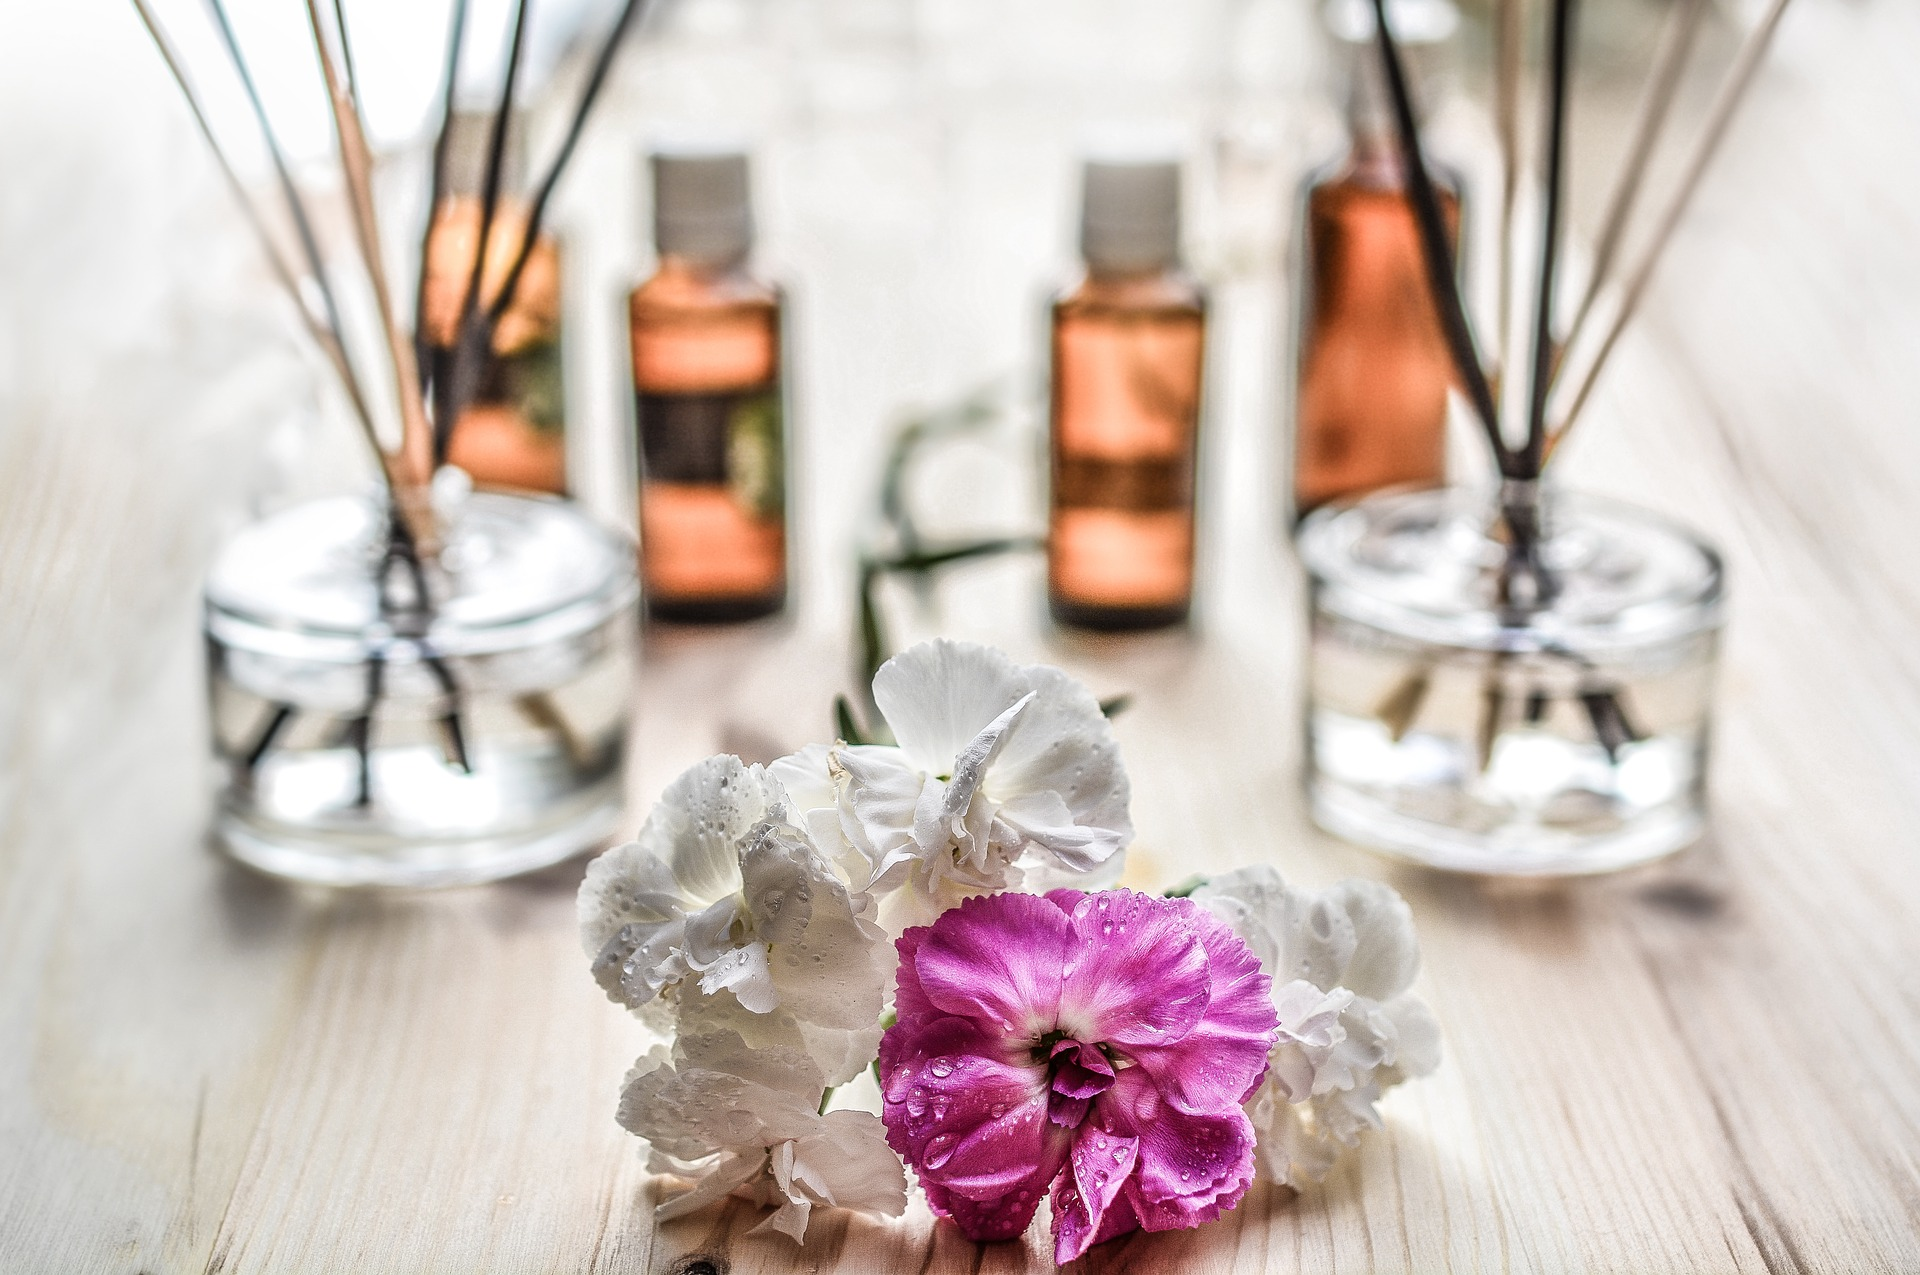 How To Make Your Bathroom Smell Better DECOLAVs Stay In The Know - How to make bathroom smell good